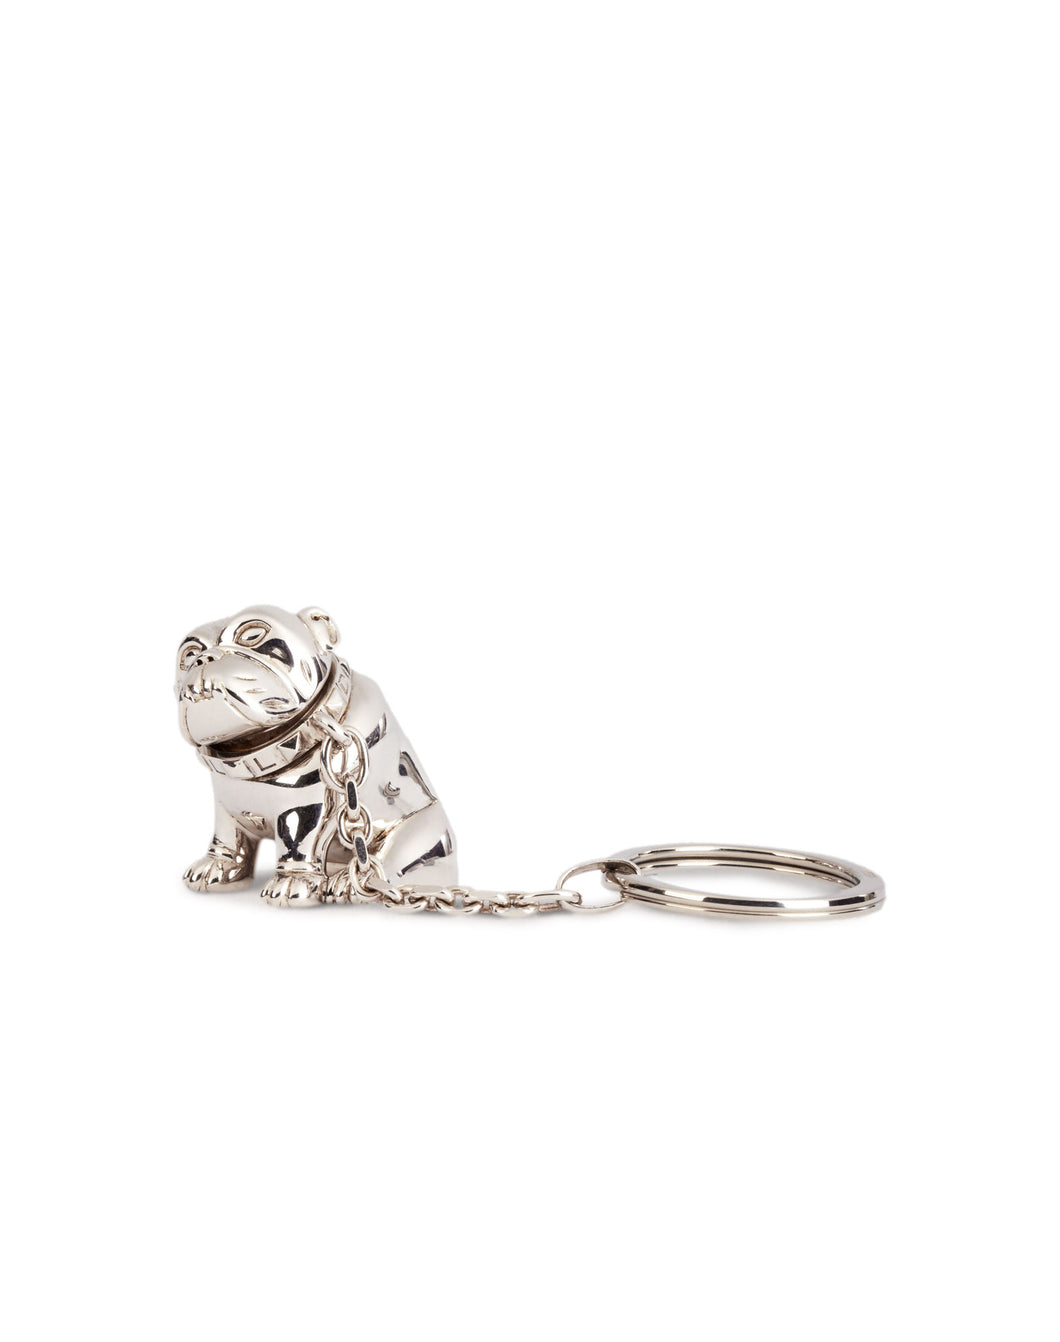 Dunhill Bulldog Key Fob in Palladium-Accessories-Sterling-and-Burke